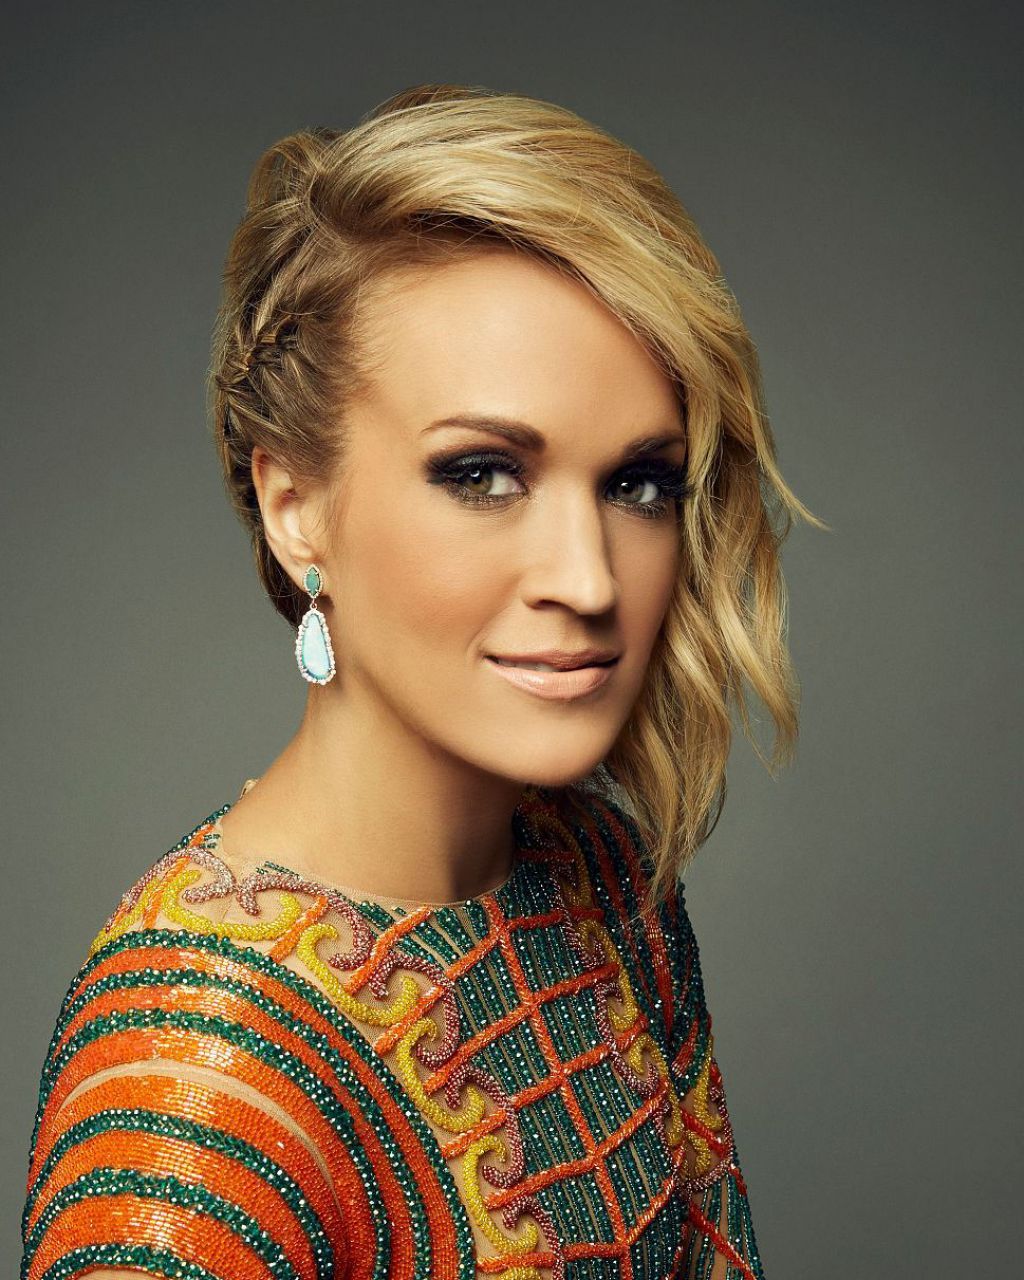 carrie underwood - photo #8